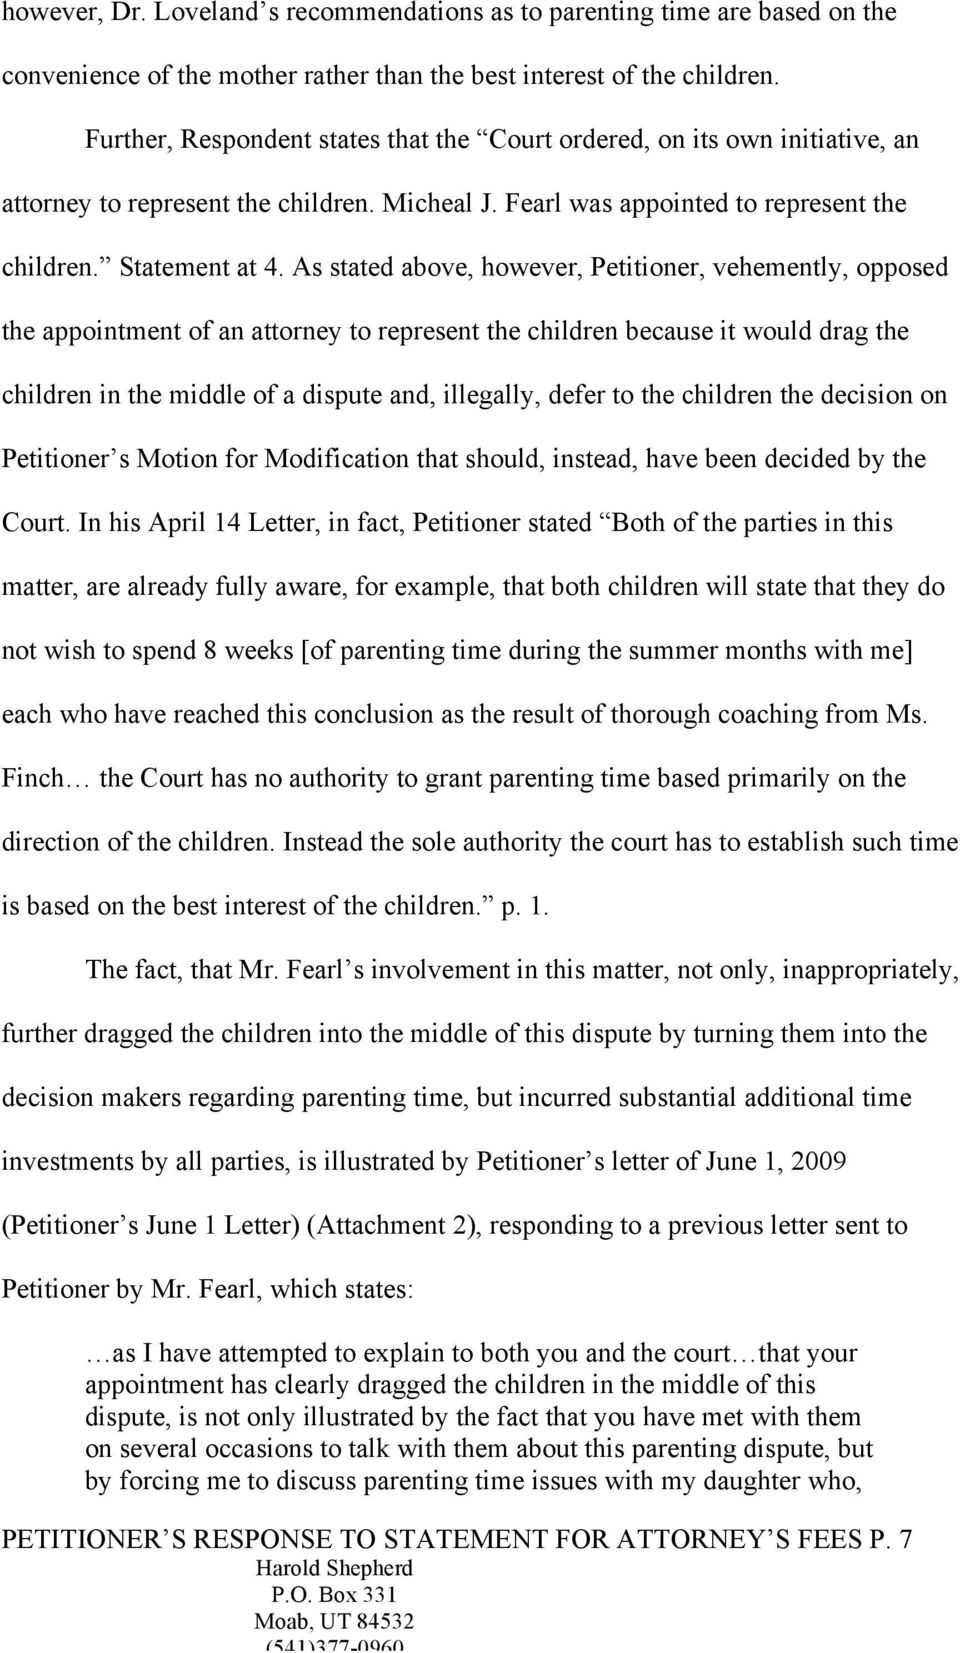 As stated above, however, Petitioner, vehemently, opposed the appointment of an attorney to represent the children because it would drag the children in the middle of a dispute and, illegally, defer